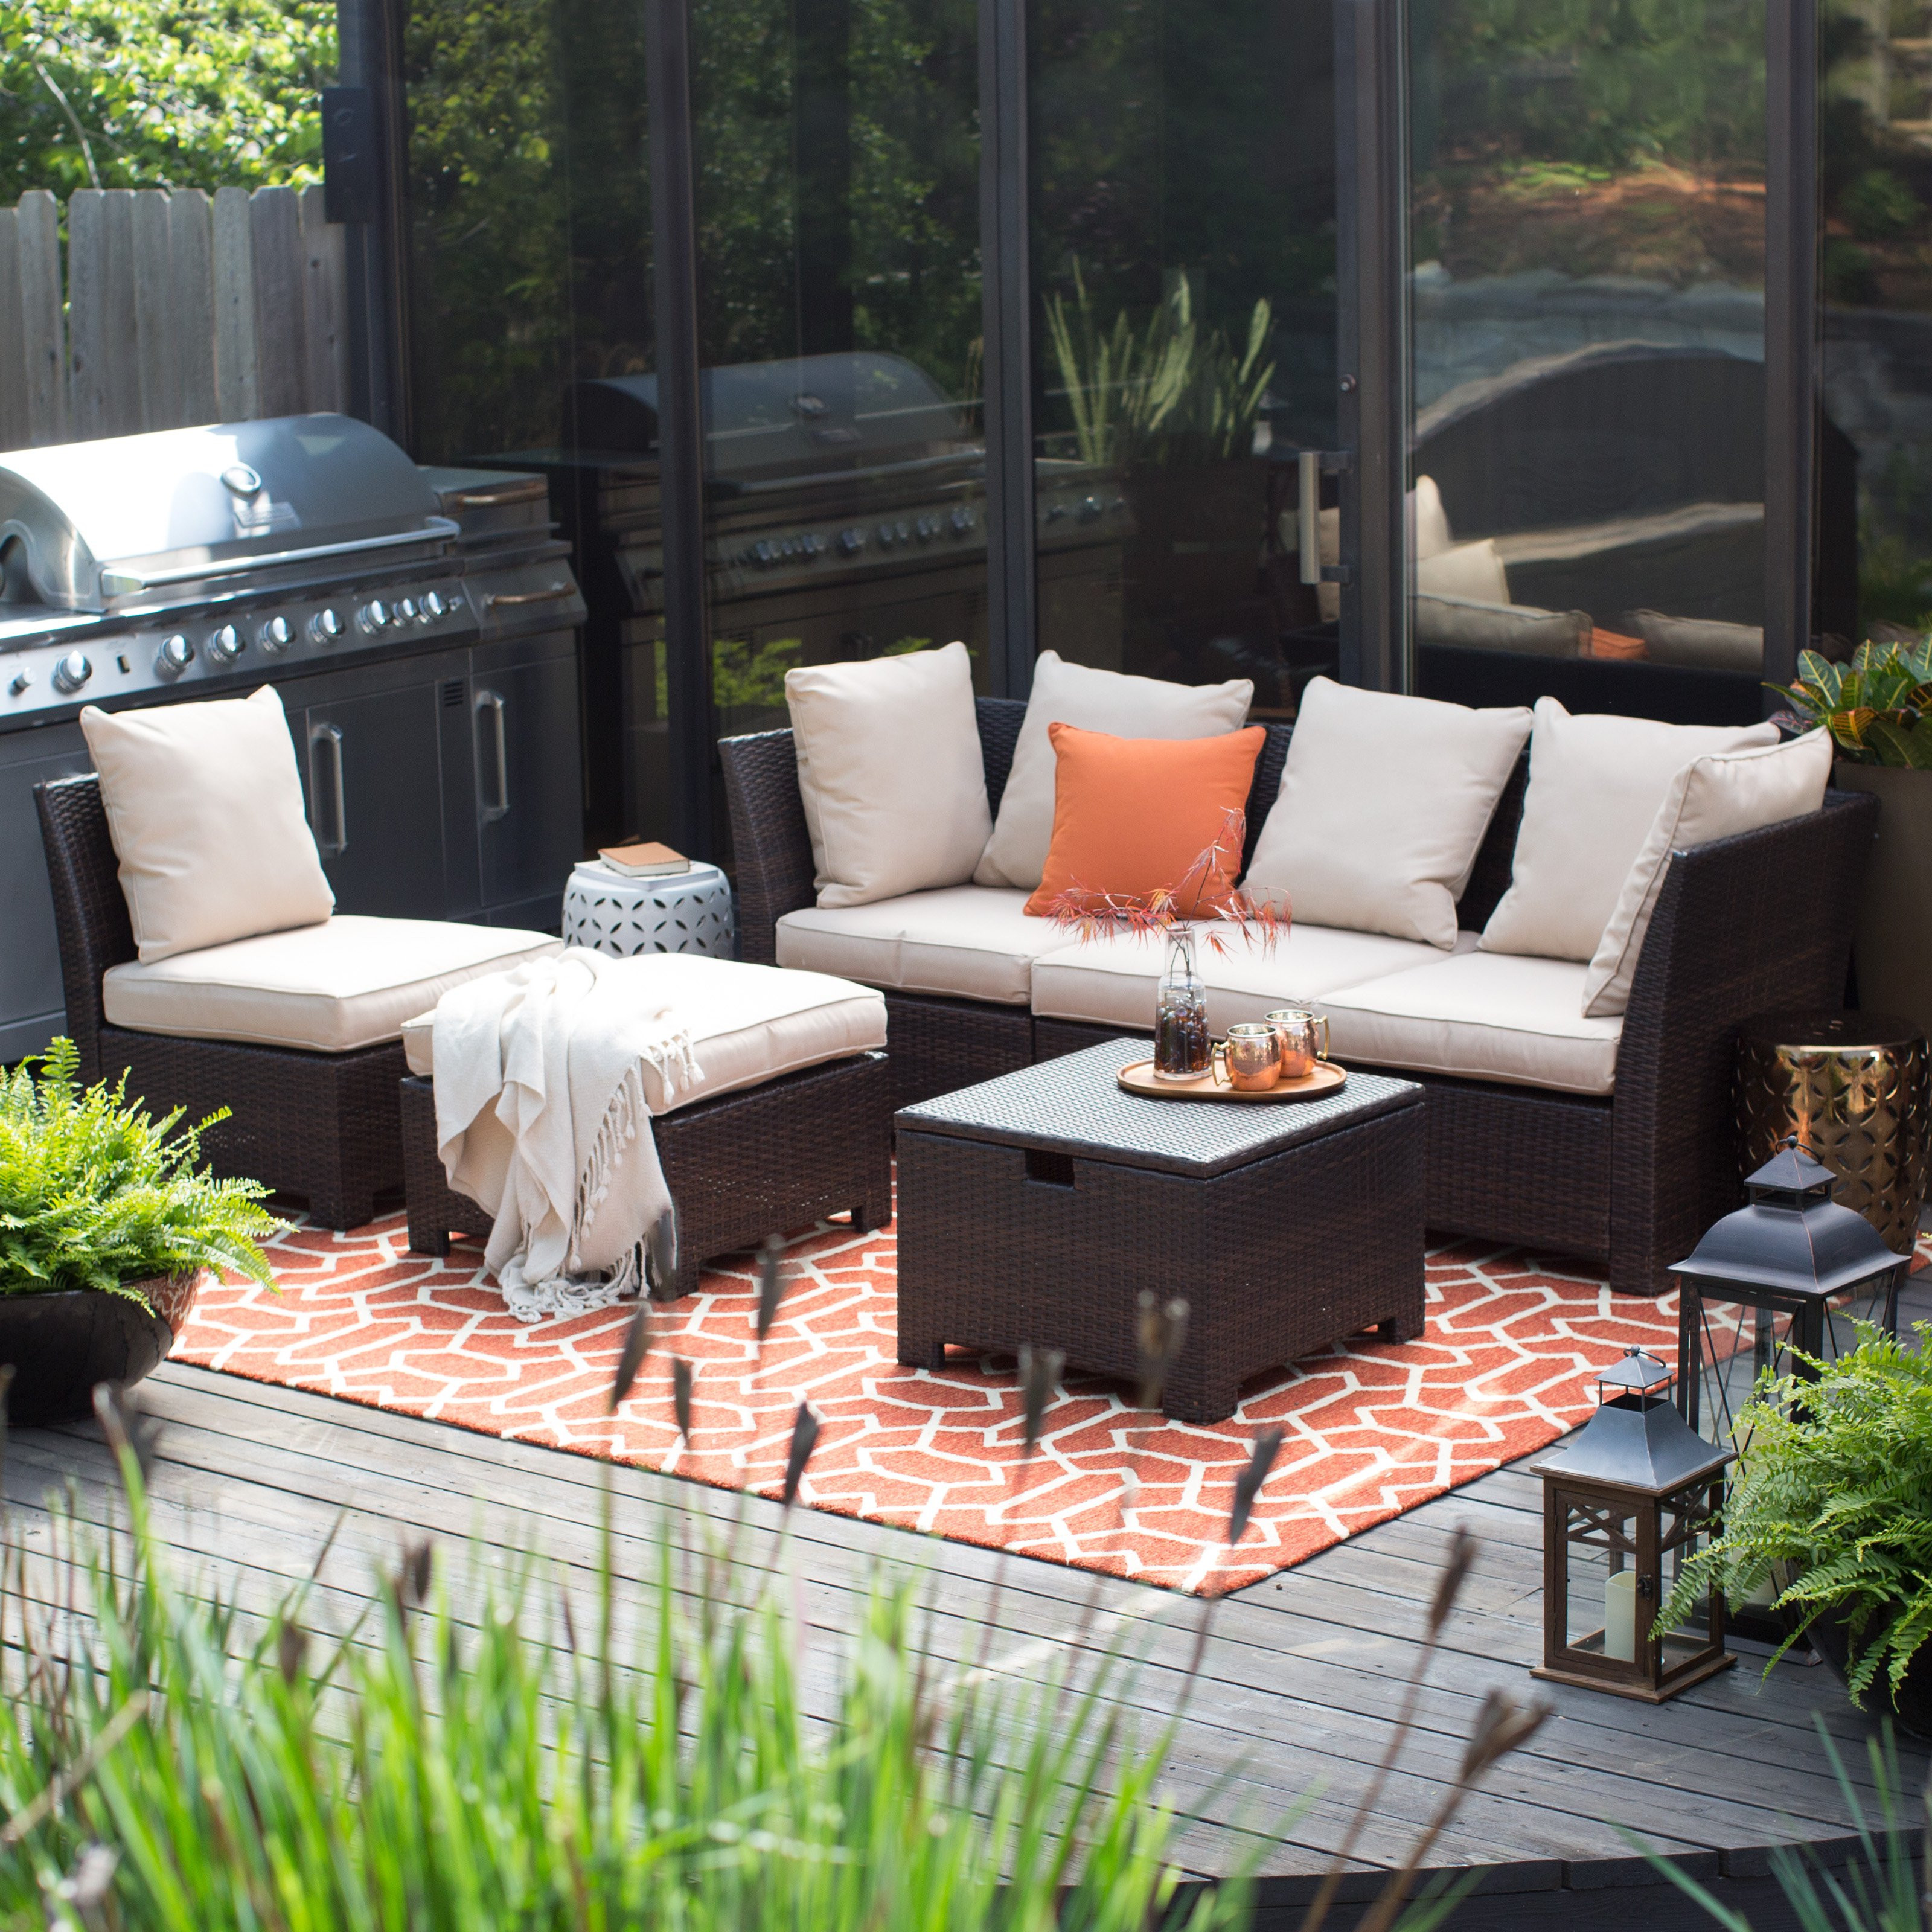 Best ideas about At Home Patio Furniture . Save or Pin Coral Coast South Isle All Weather Wicker Dark Brown Now.